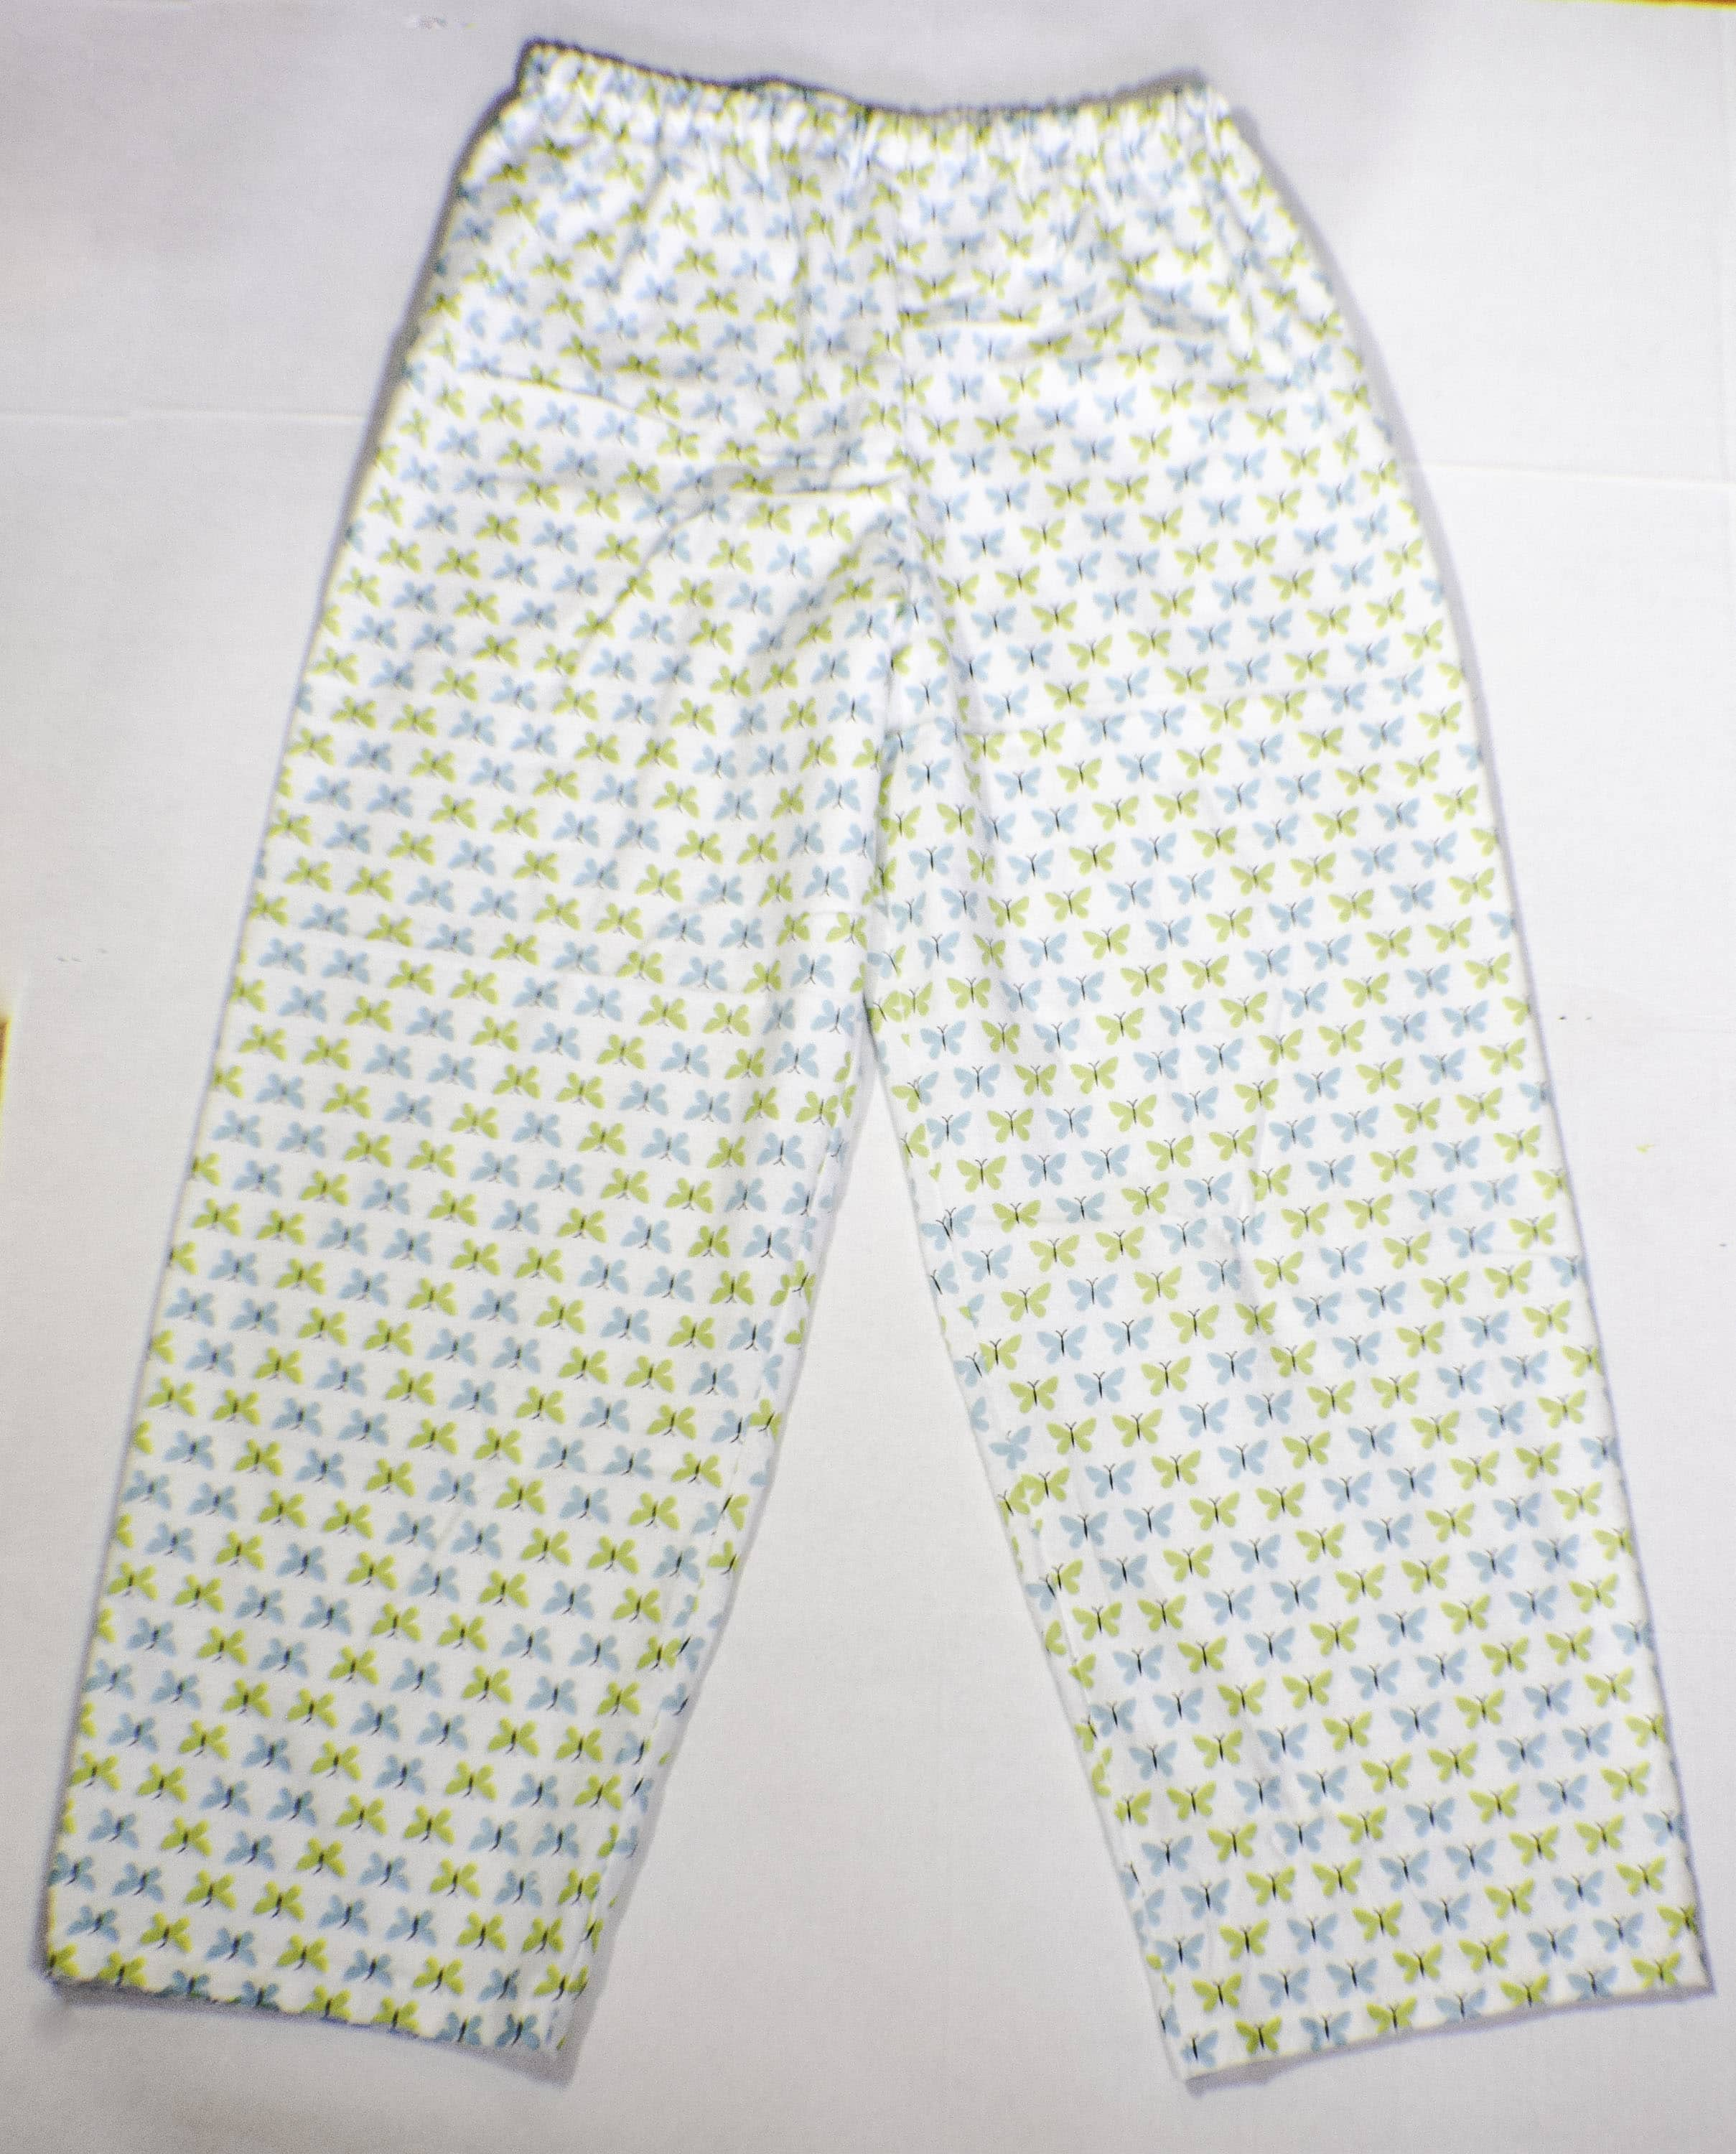 photo relating to Printable Pajama Pants Pattern named Generate Pajama Bottoms Without having a Routine - Sew Rather Cunning